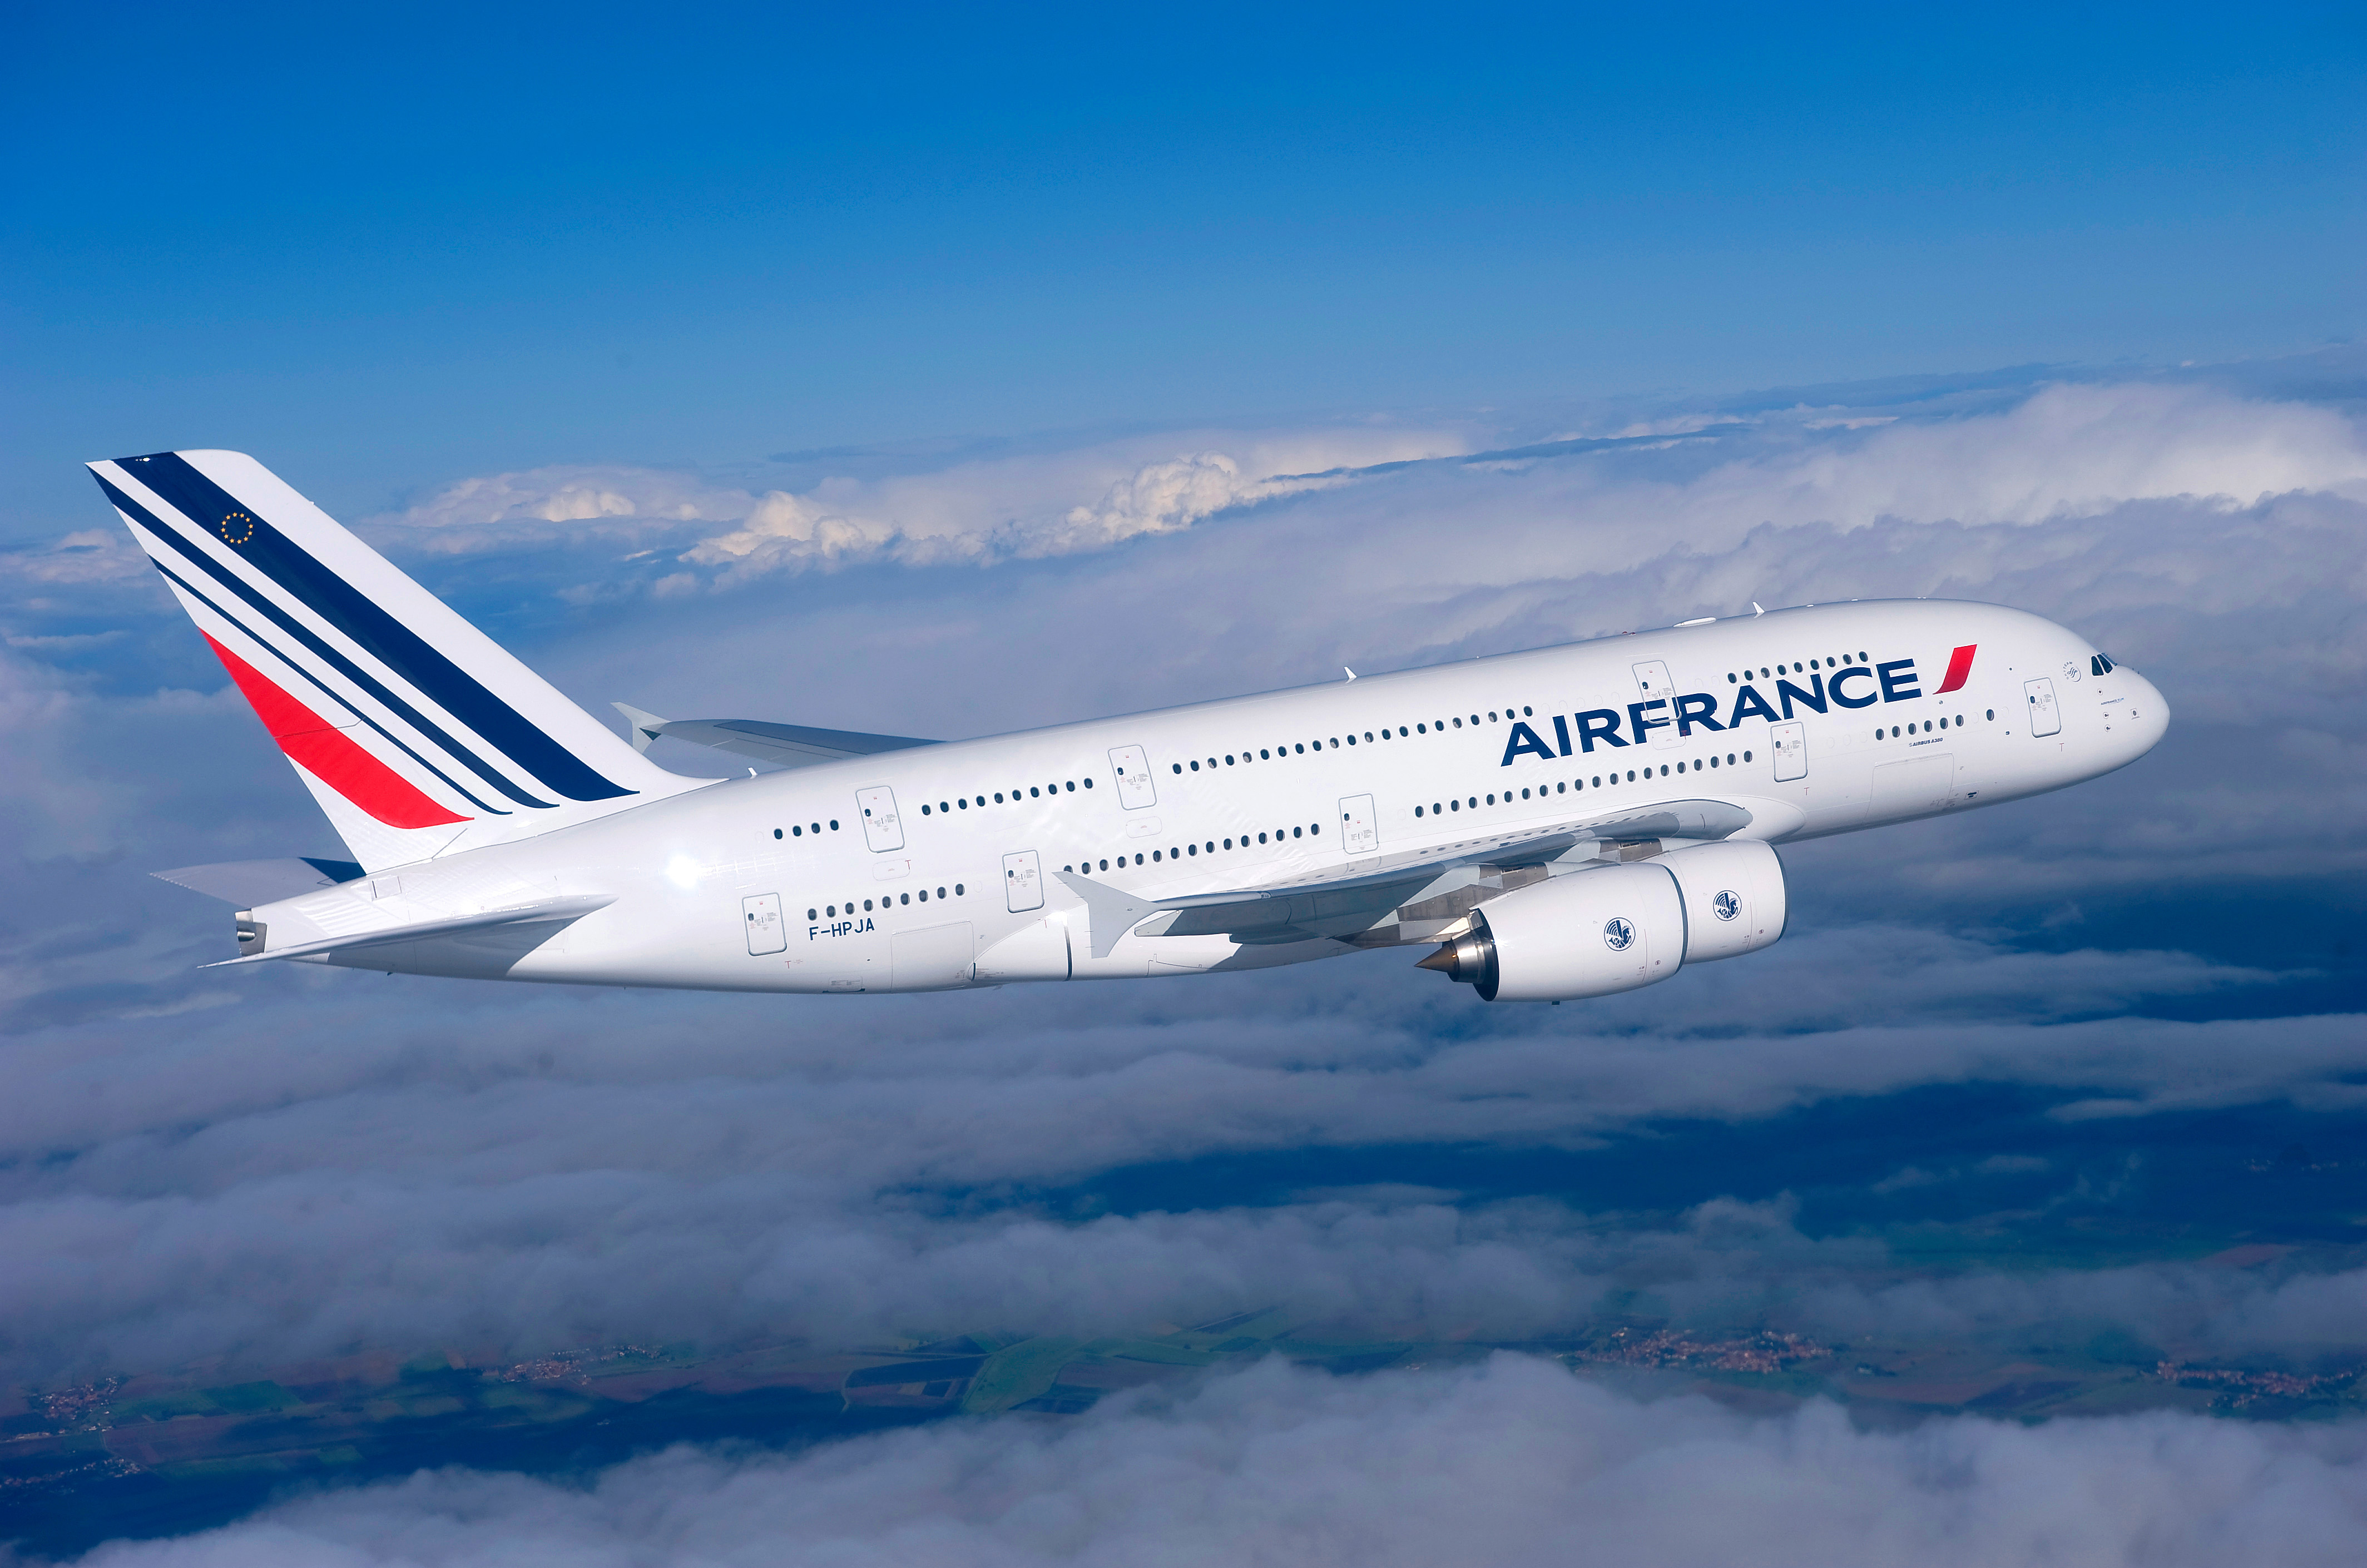 Gastronomía francesa a bordo de Air France